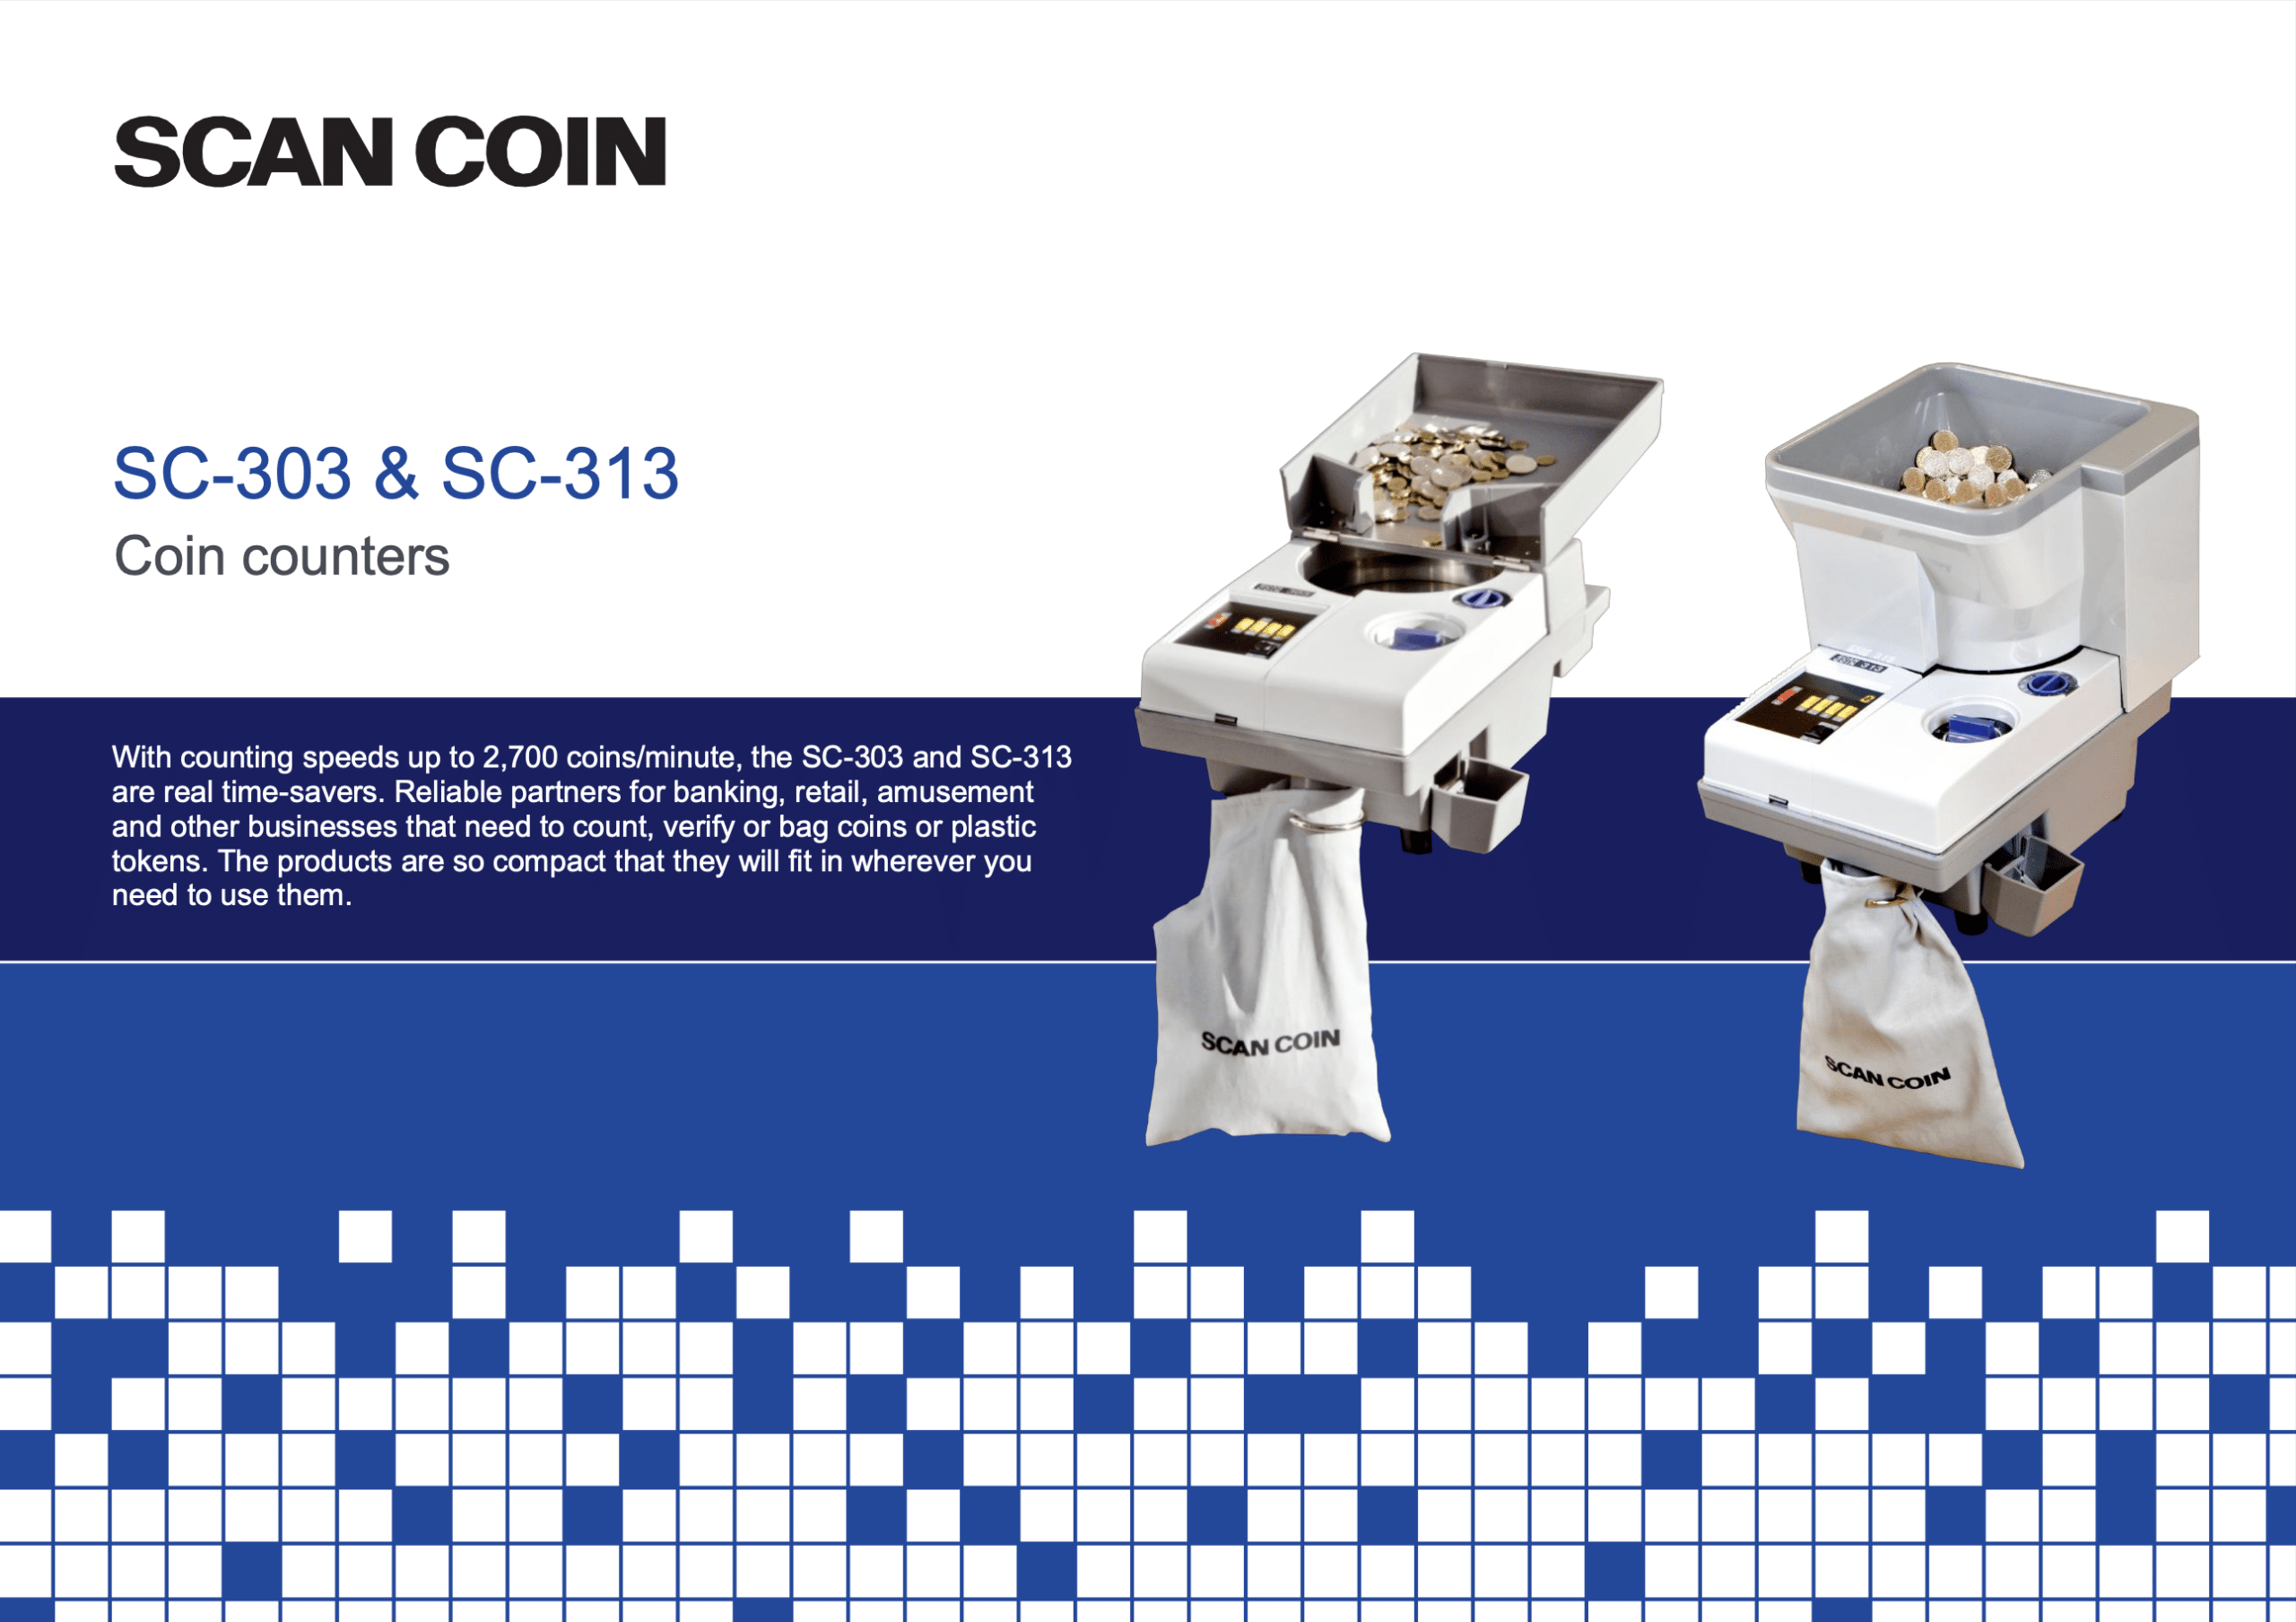 Counting coins with SCAN COIN